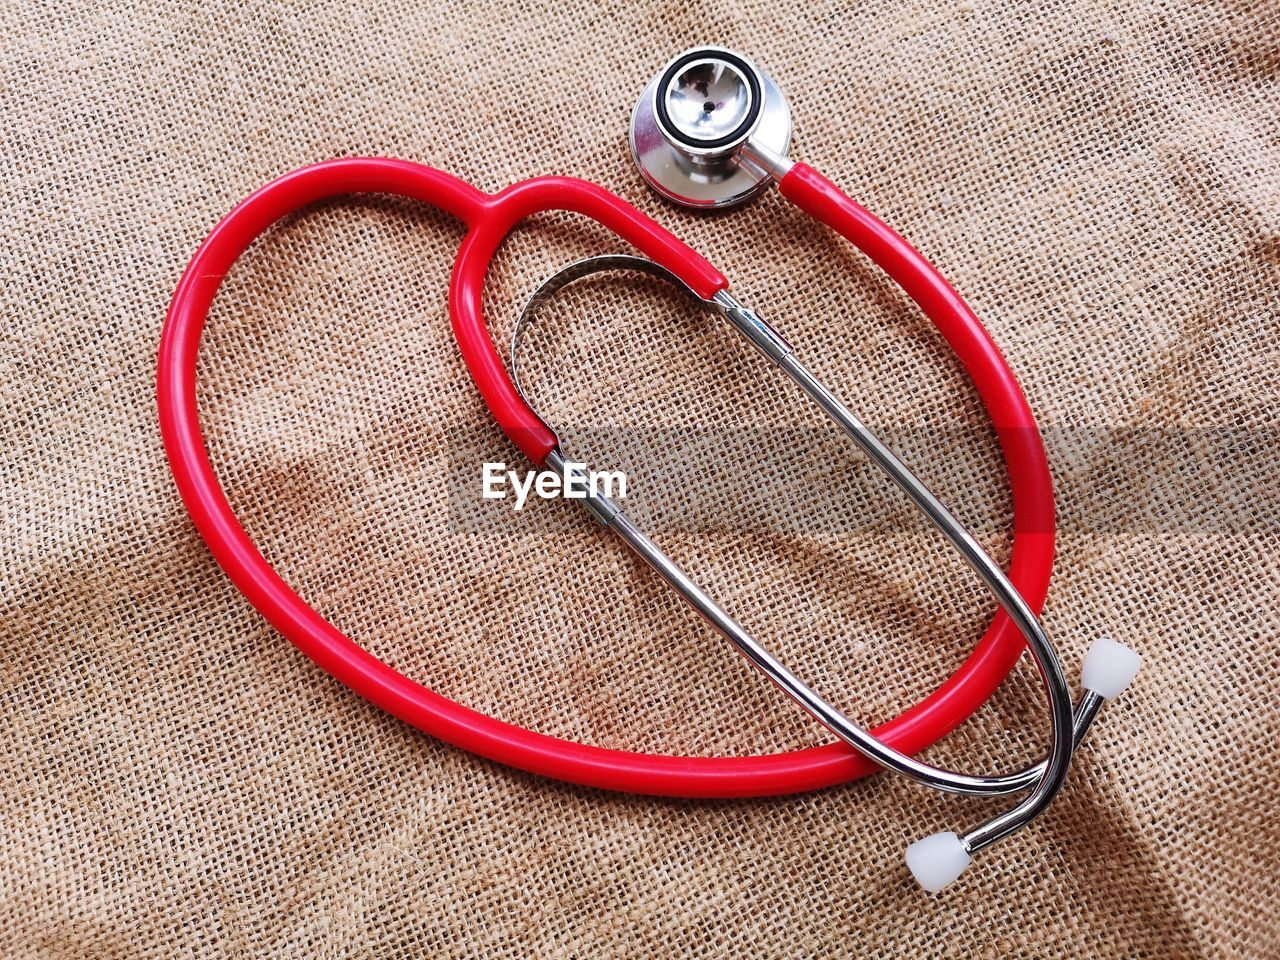 stethoscope, medical instrument, medical supplies, medical equipment, still life, healthcare and medicine, high angle view, indoors, no people, close-up, diagnostic medical tool, red, textile, equipment, medical exam, listening, single object, studio shot, pulse trace, personal accessory